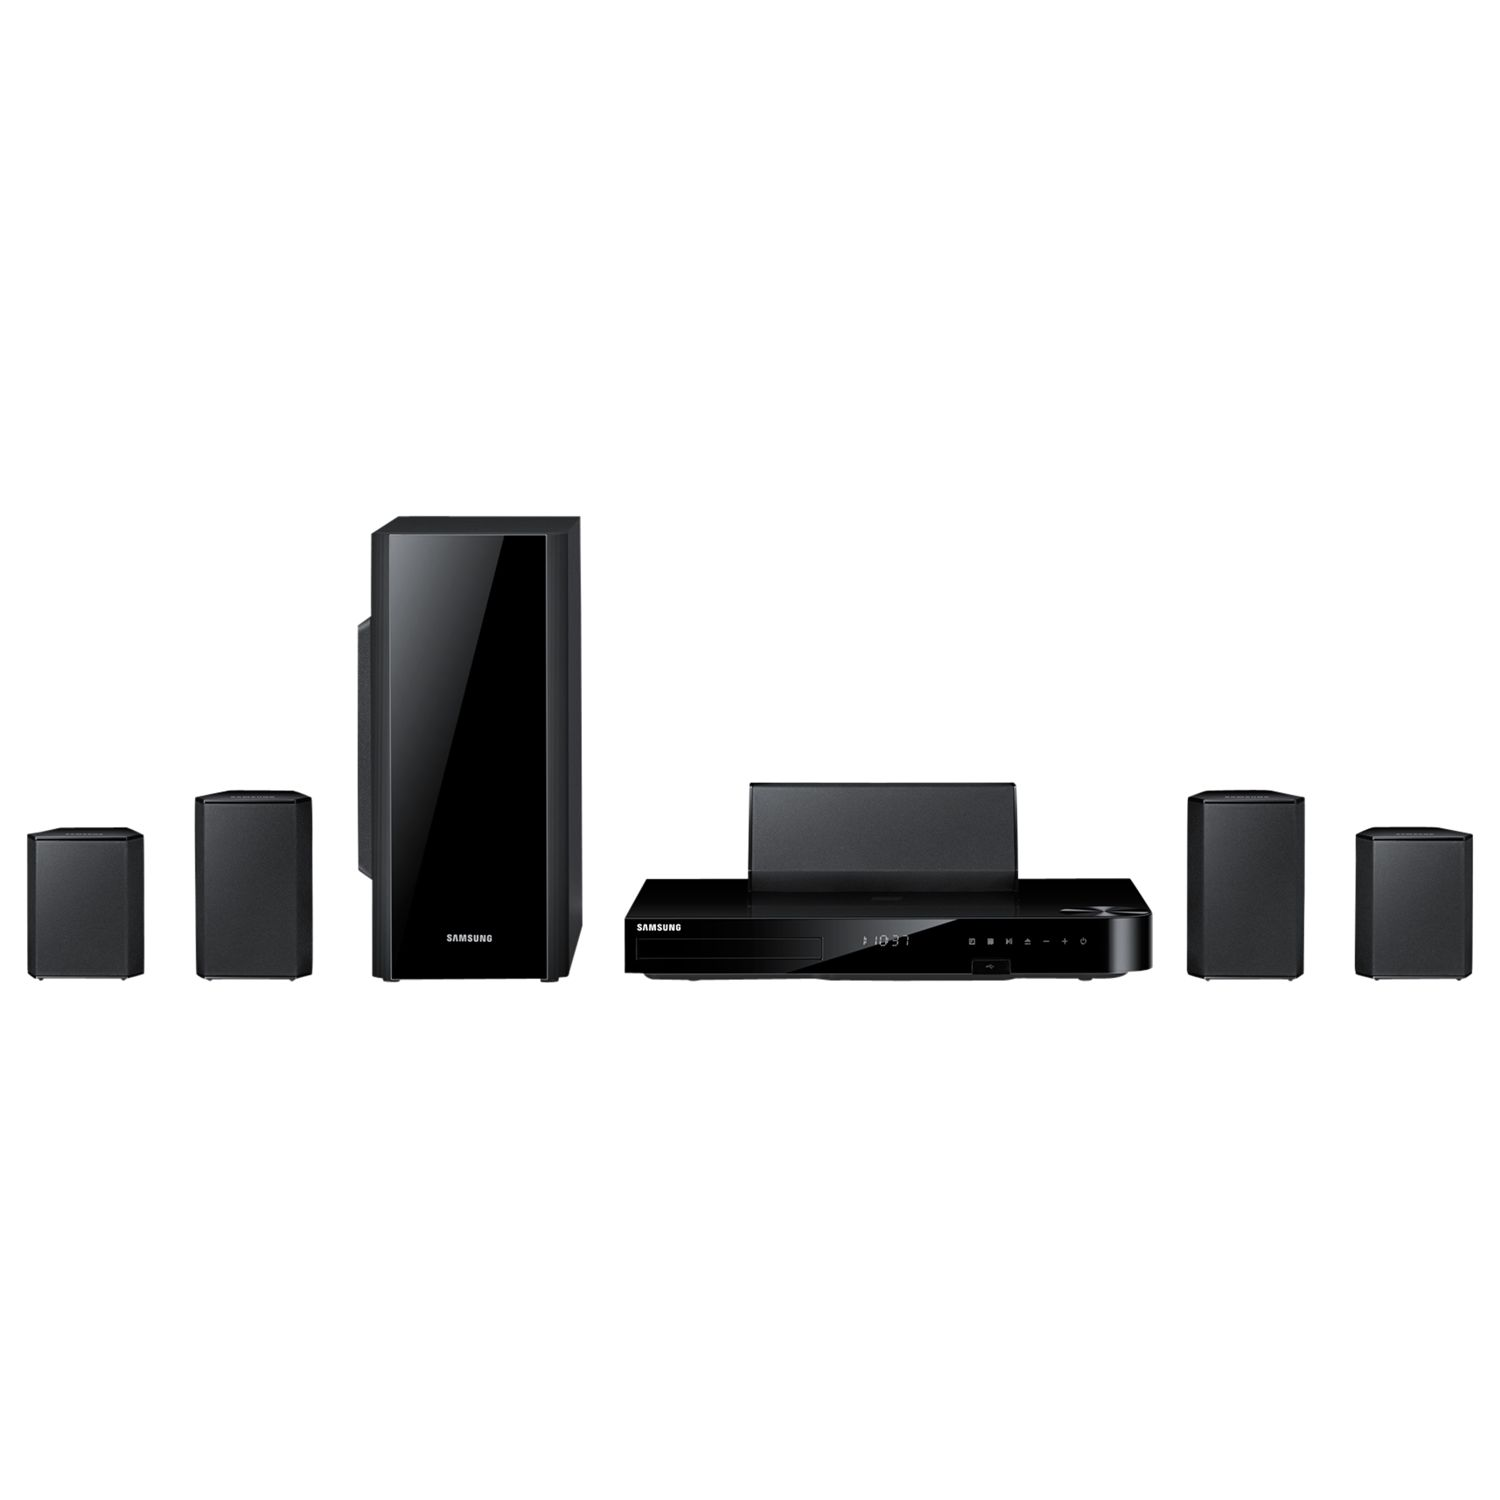 bose home theater systems price xbox 360 elite